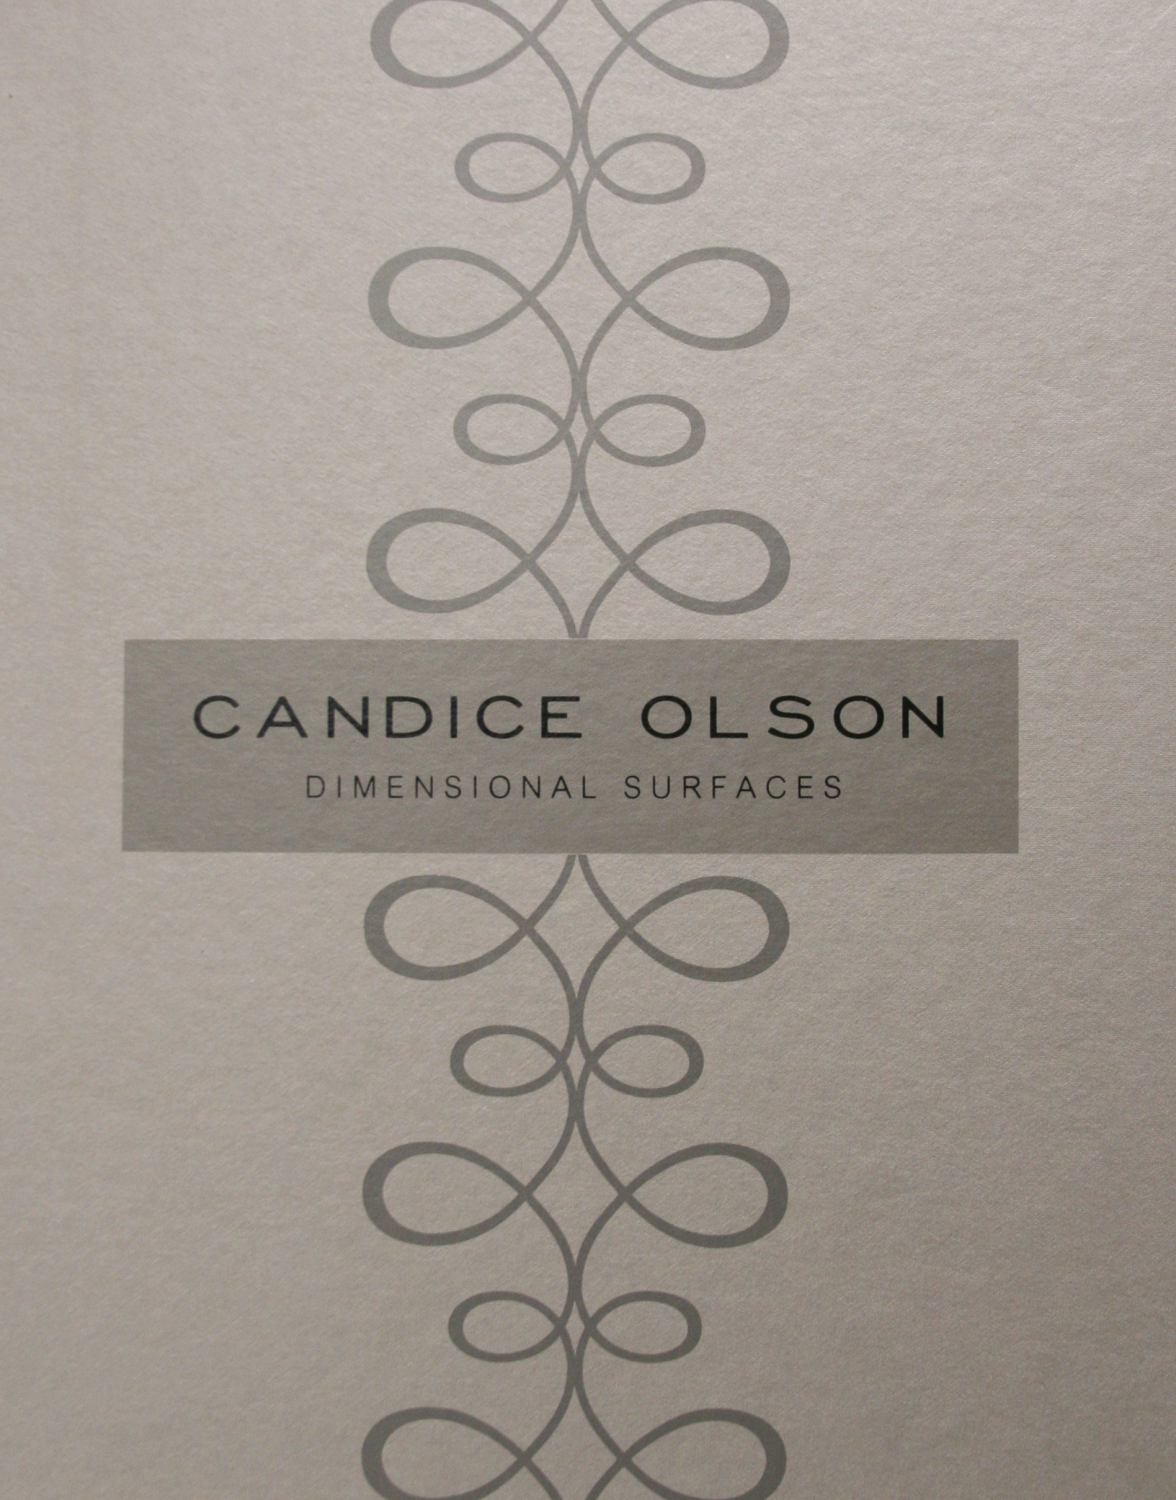 Candice Olson Dimensional Surfaces Wallpaper Collection